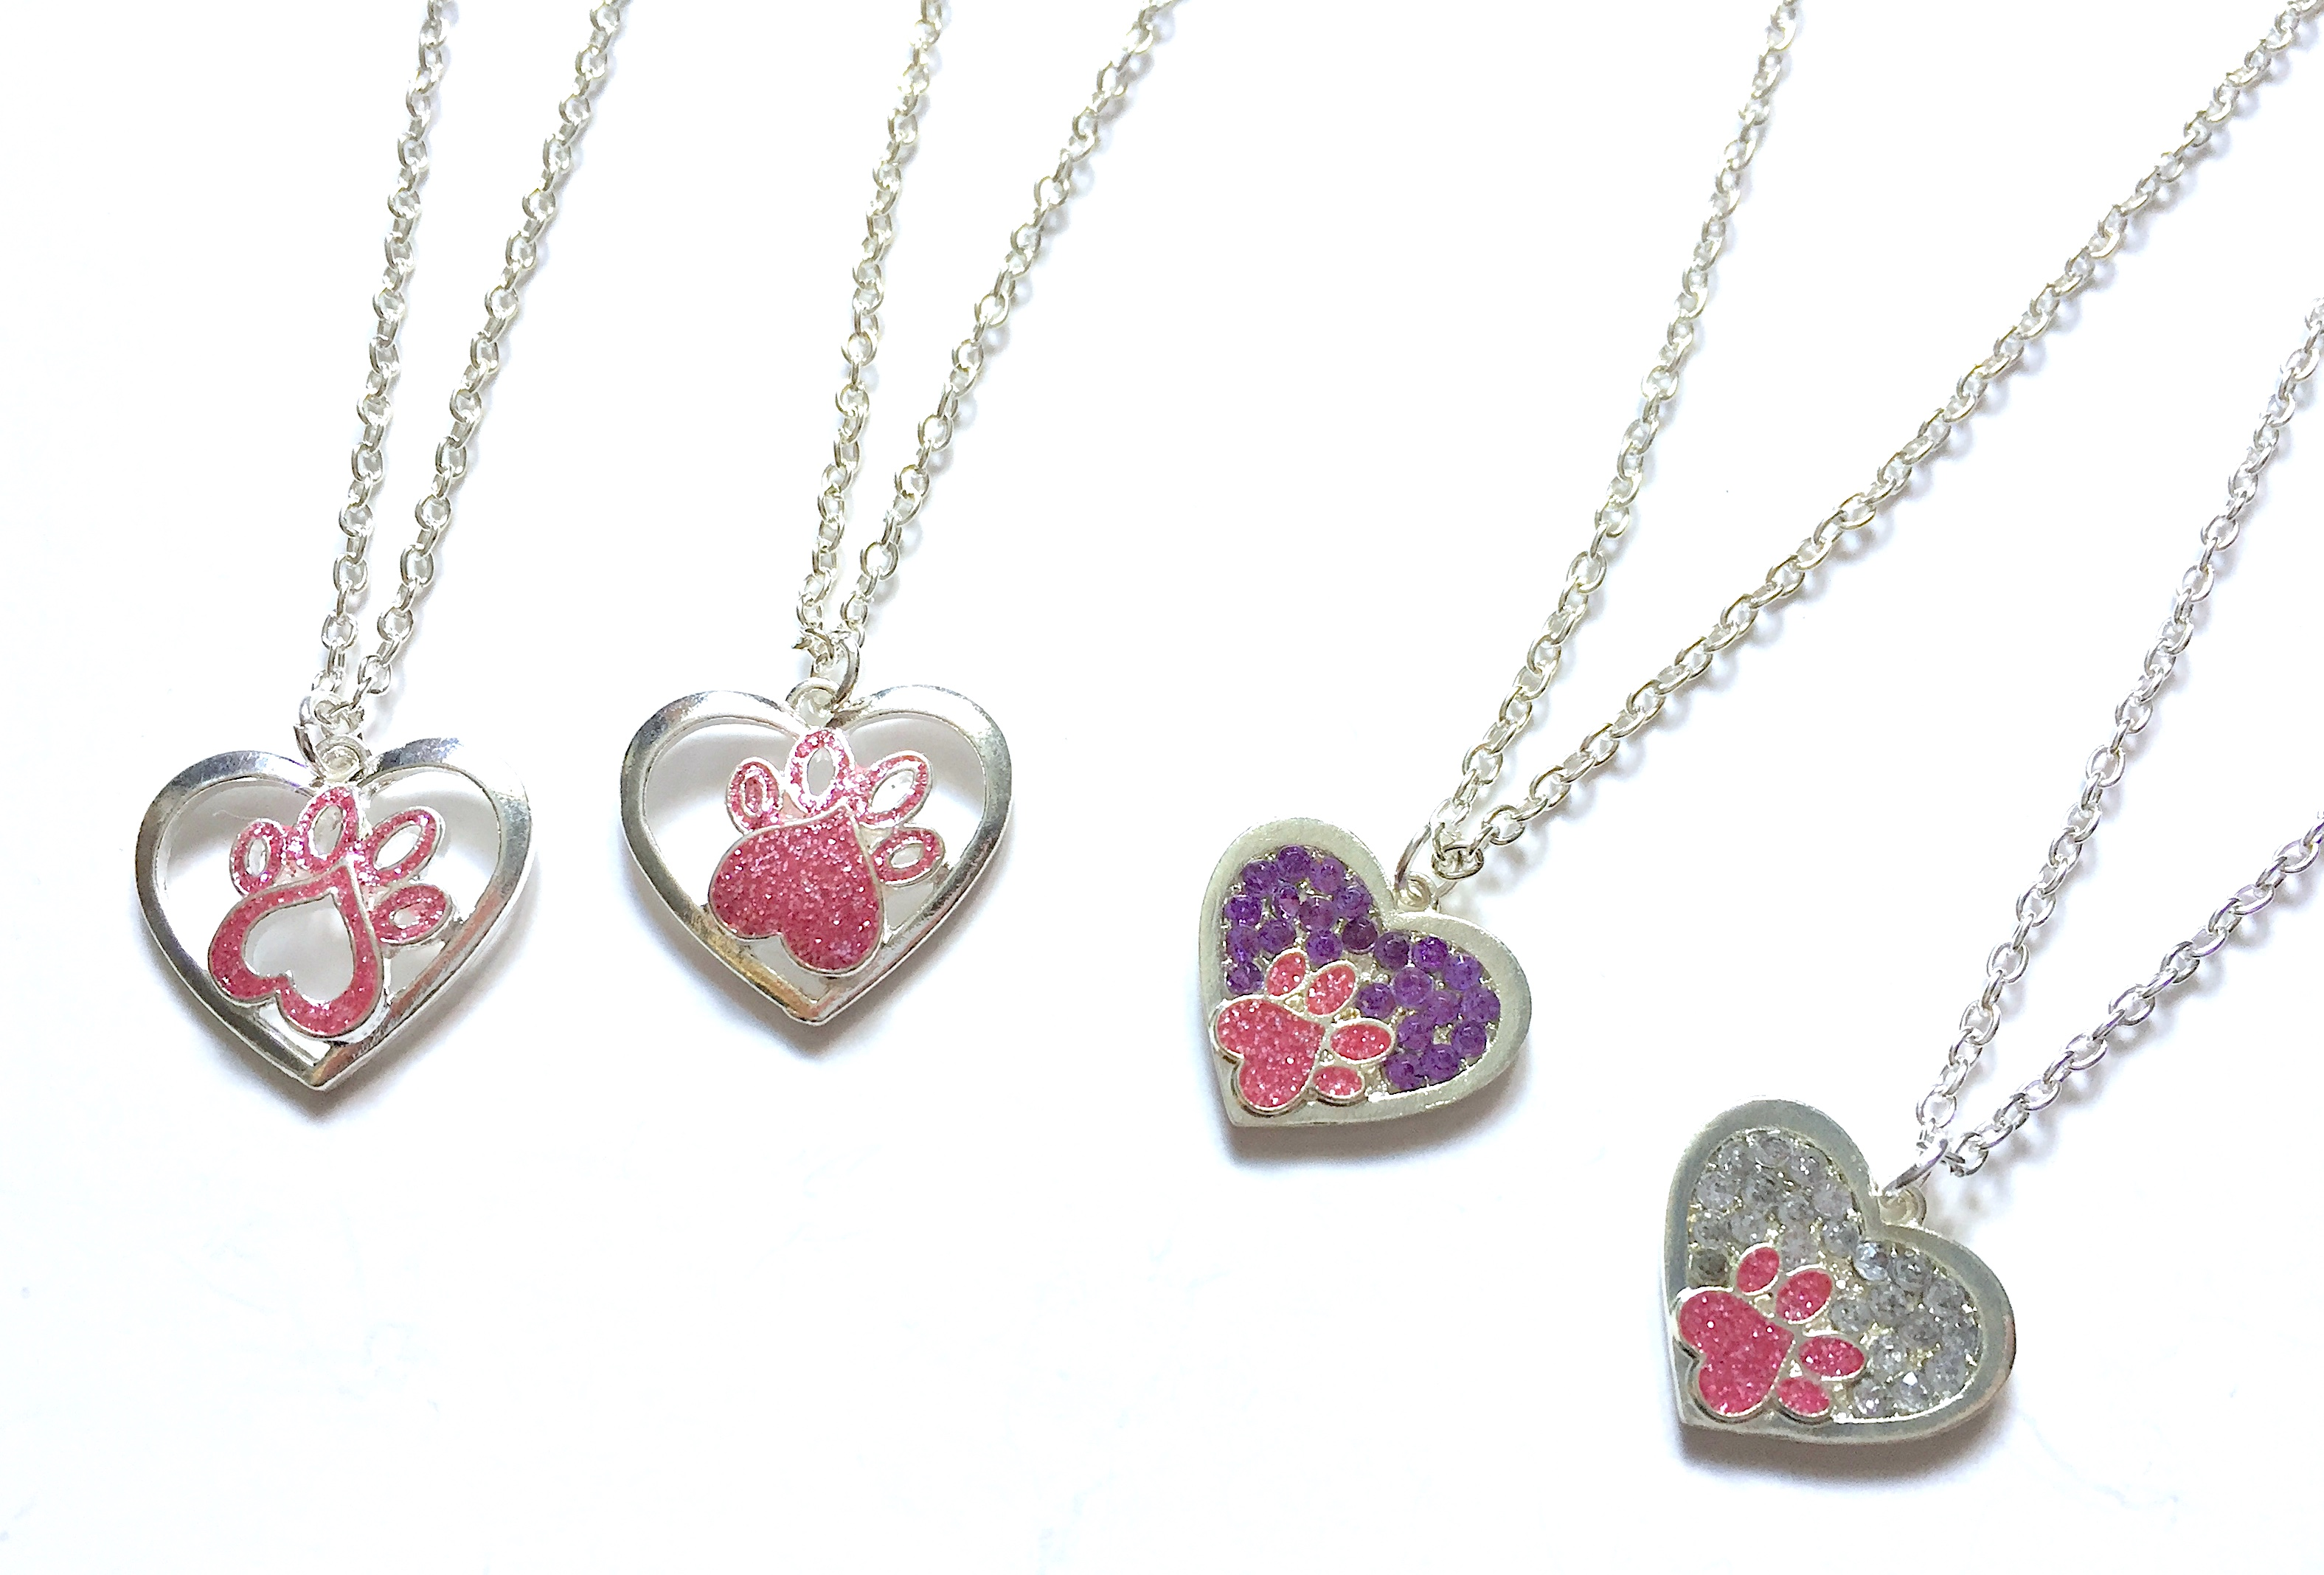 Paw Print Heart Necklaces